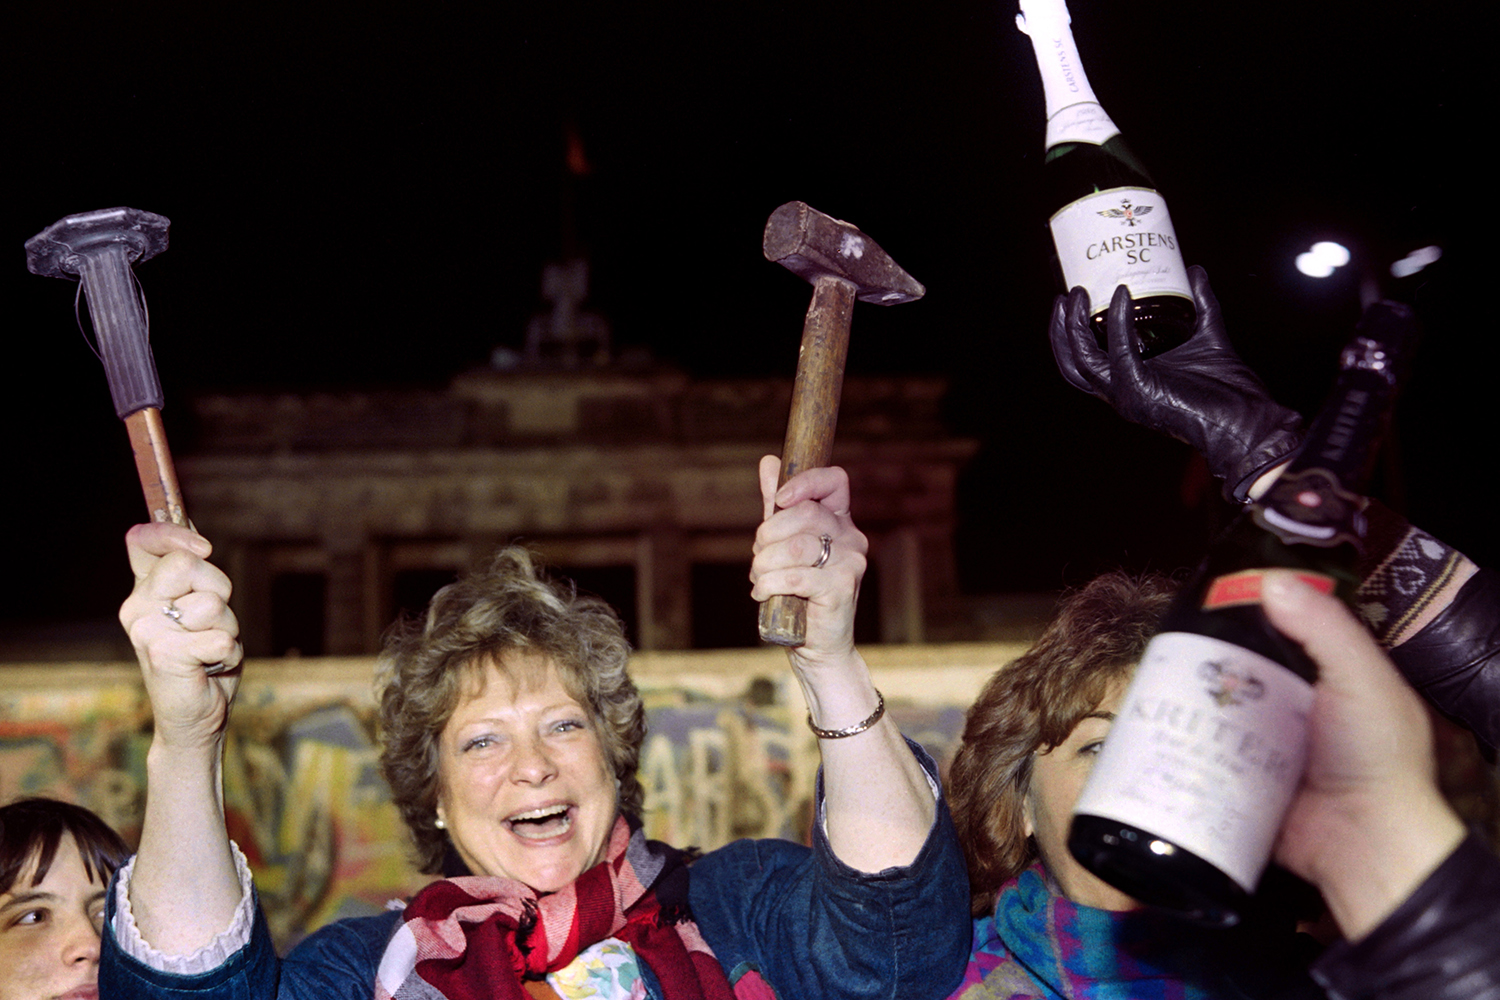 A Berliner holds up a hammer and a chisel in front of the wall on Nov. 15, 1989. Gerard Malie/AFP via Getty Images